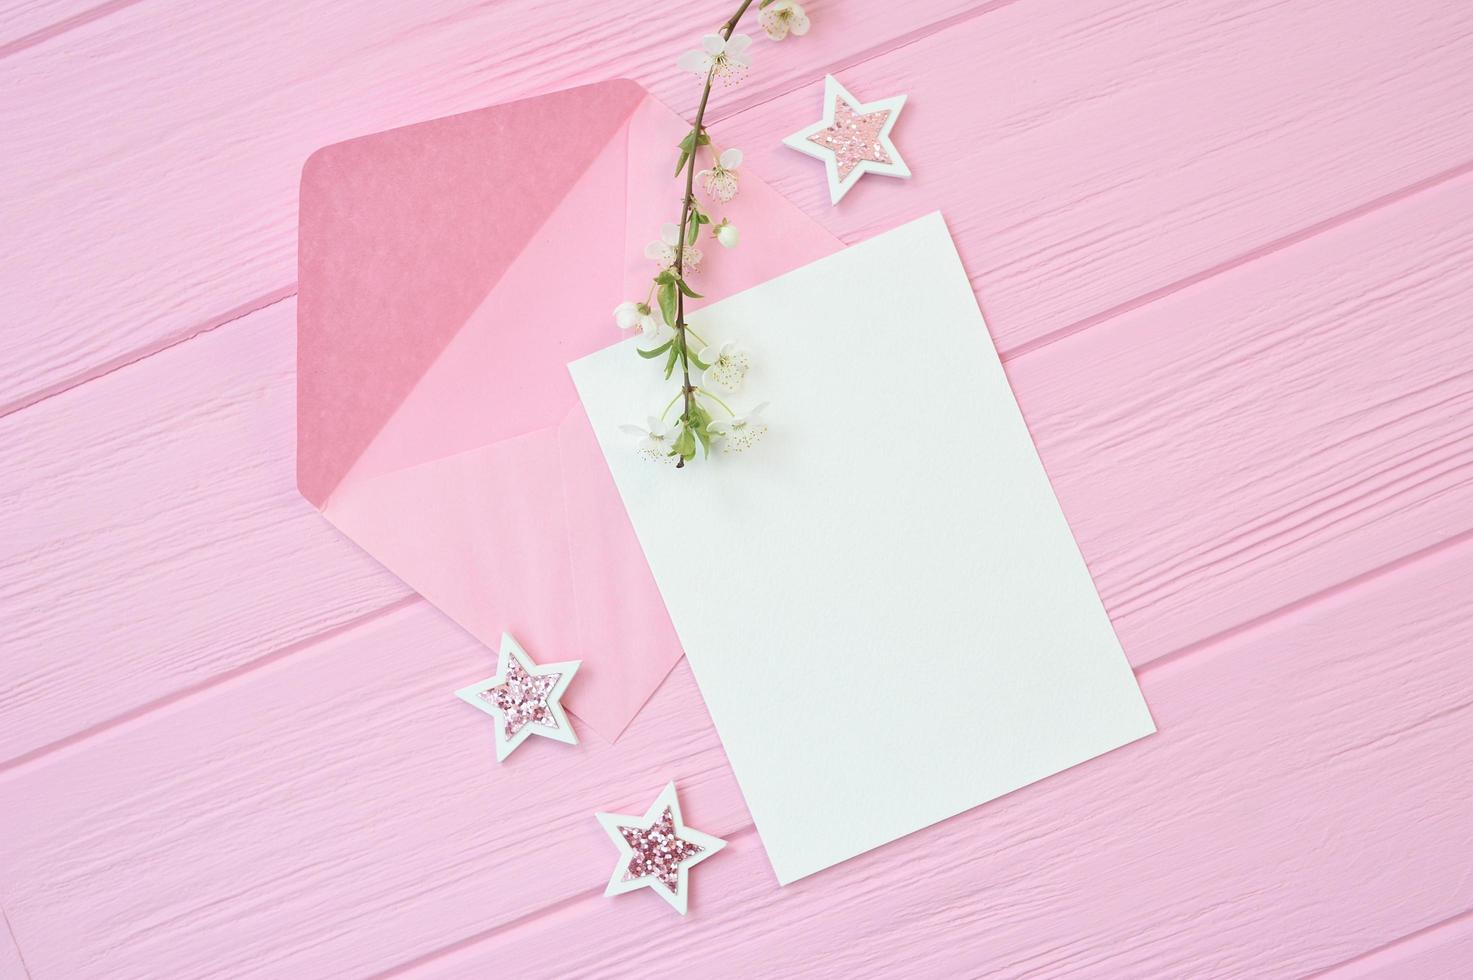 Mockup paper with foliage and pink background photo